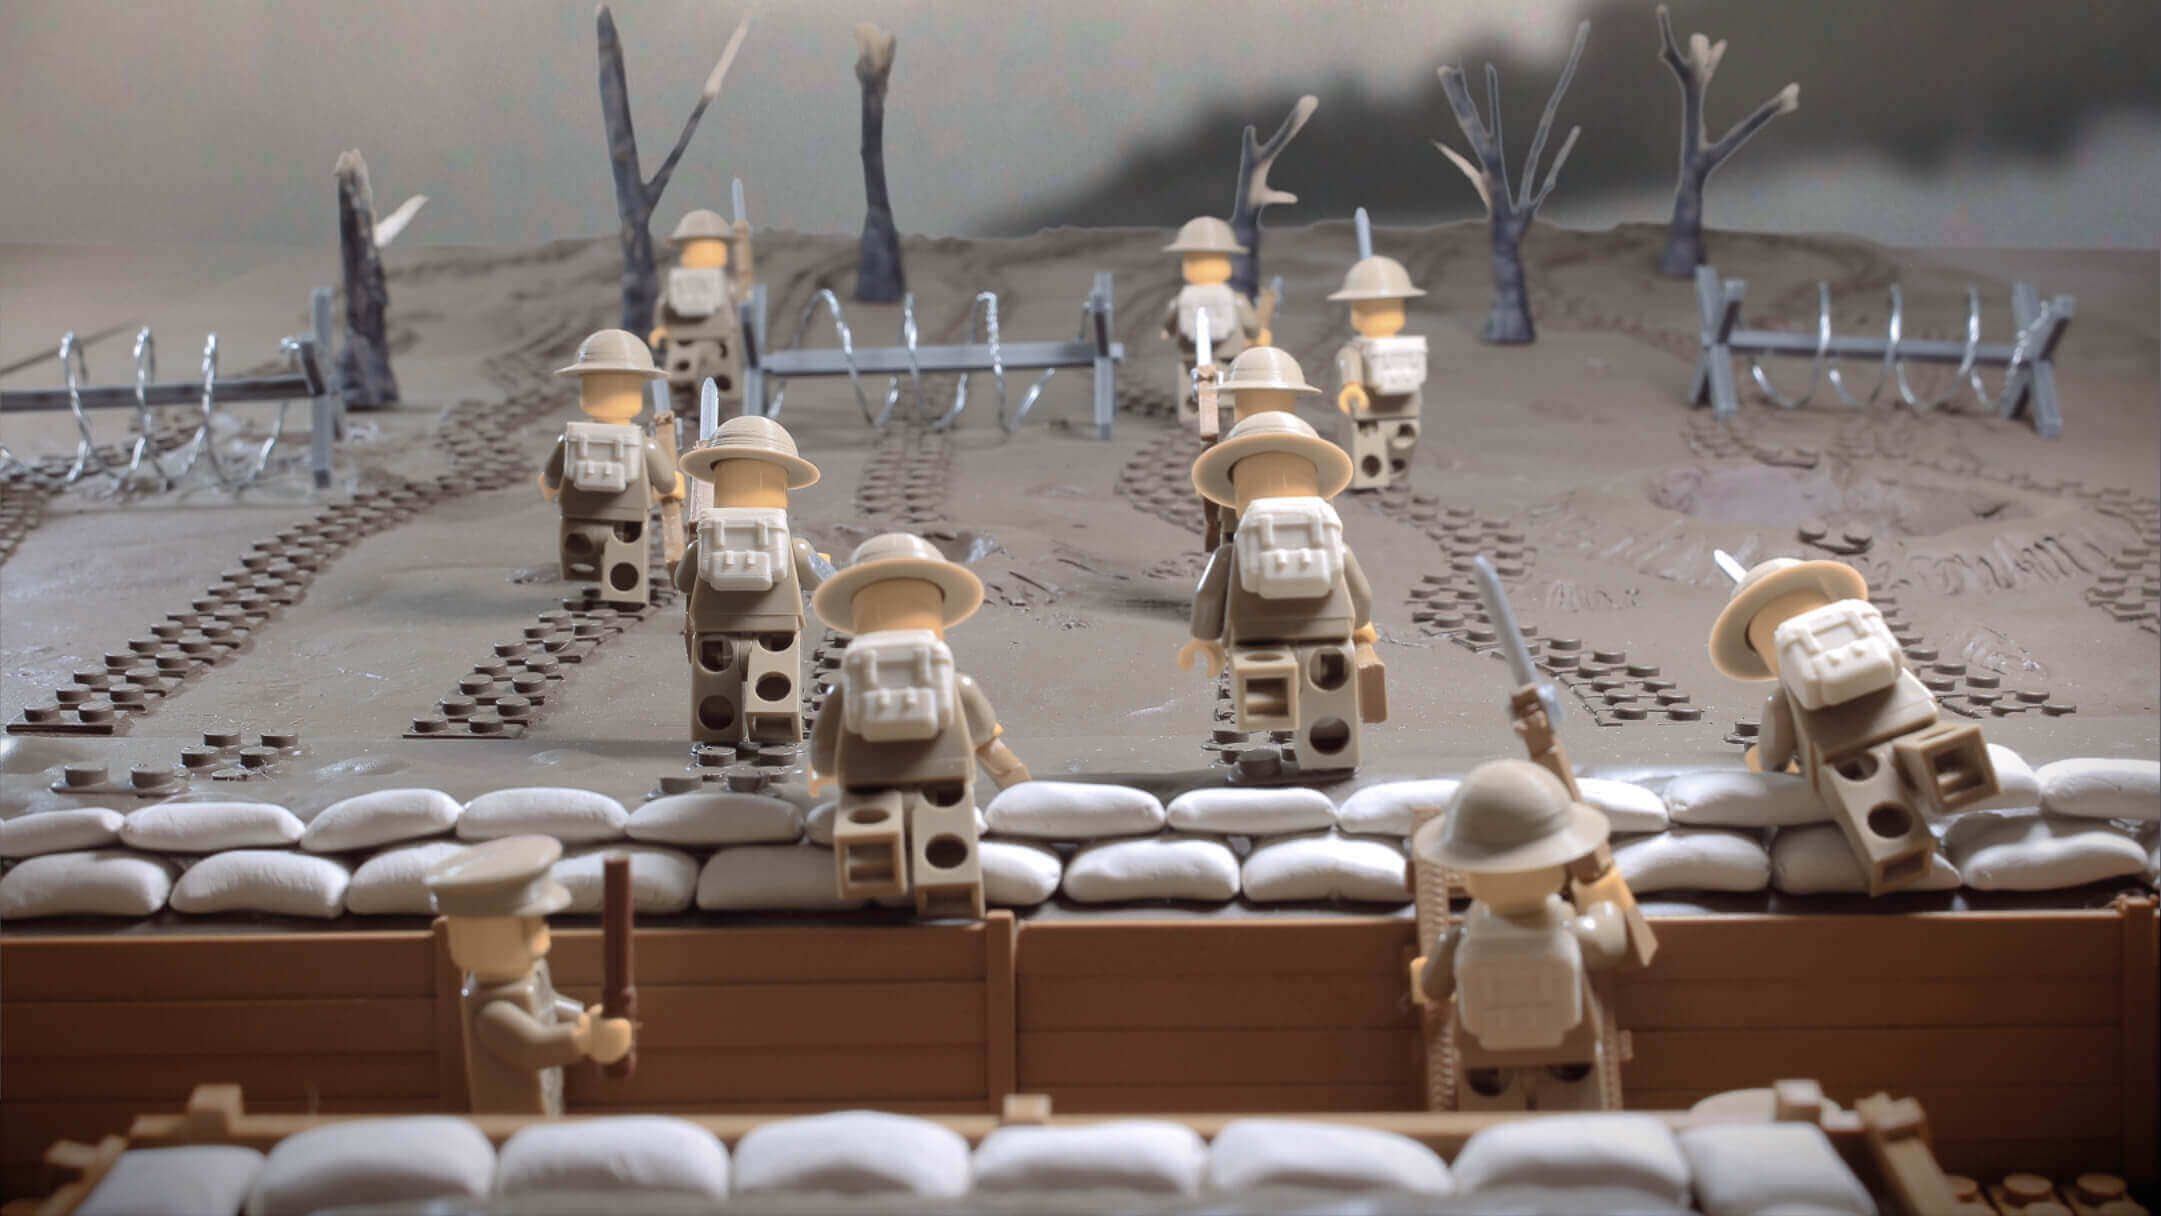 Minifig Battlefields Recreate Wwi Trenches With Lego And 3d Printing